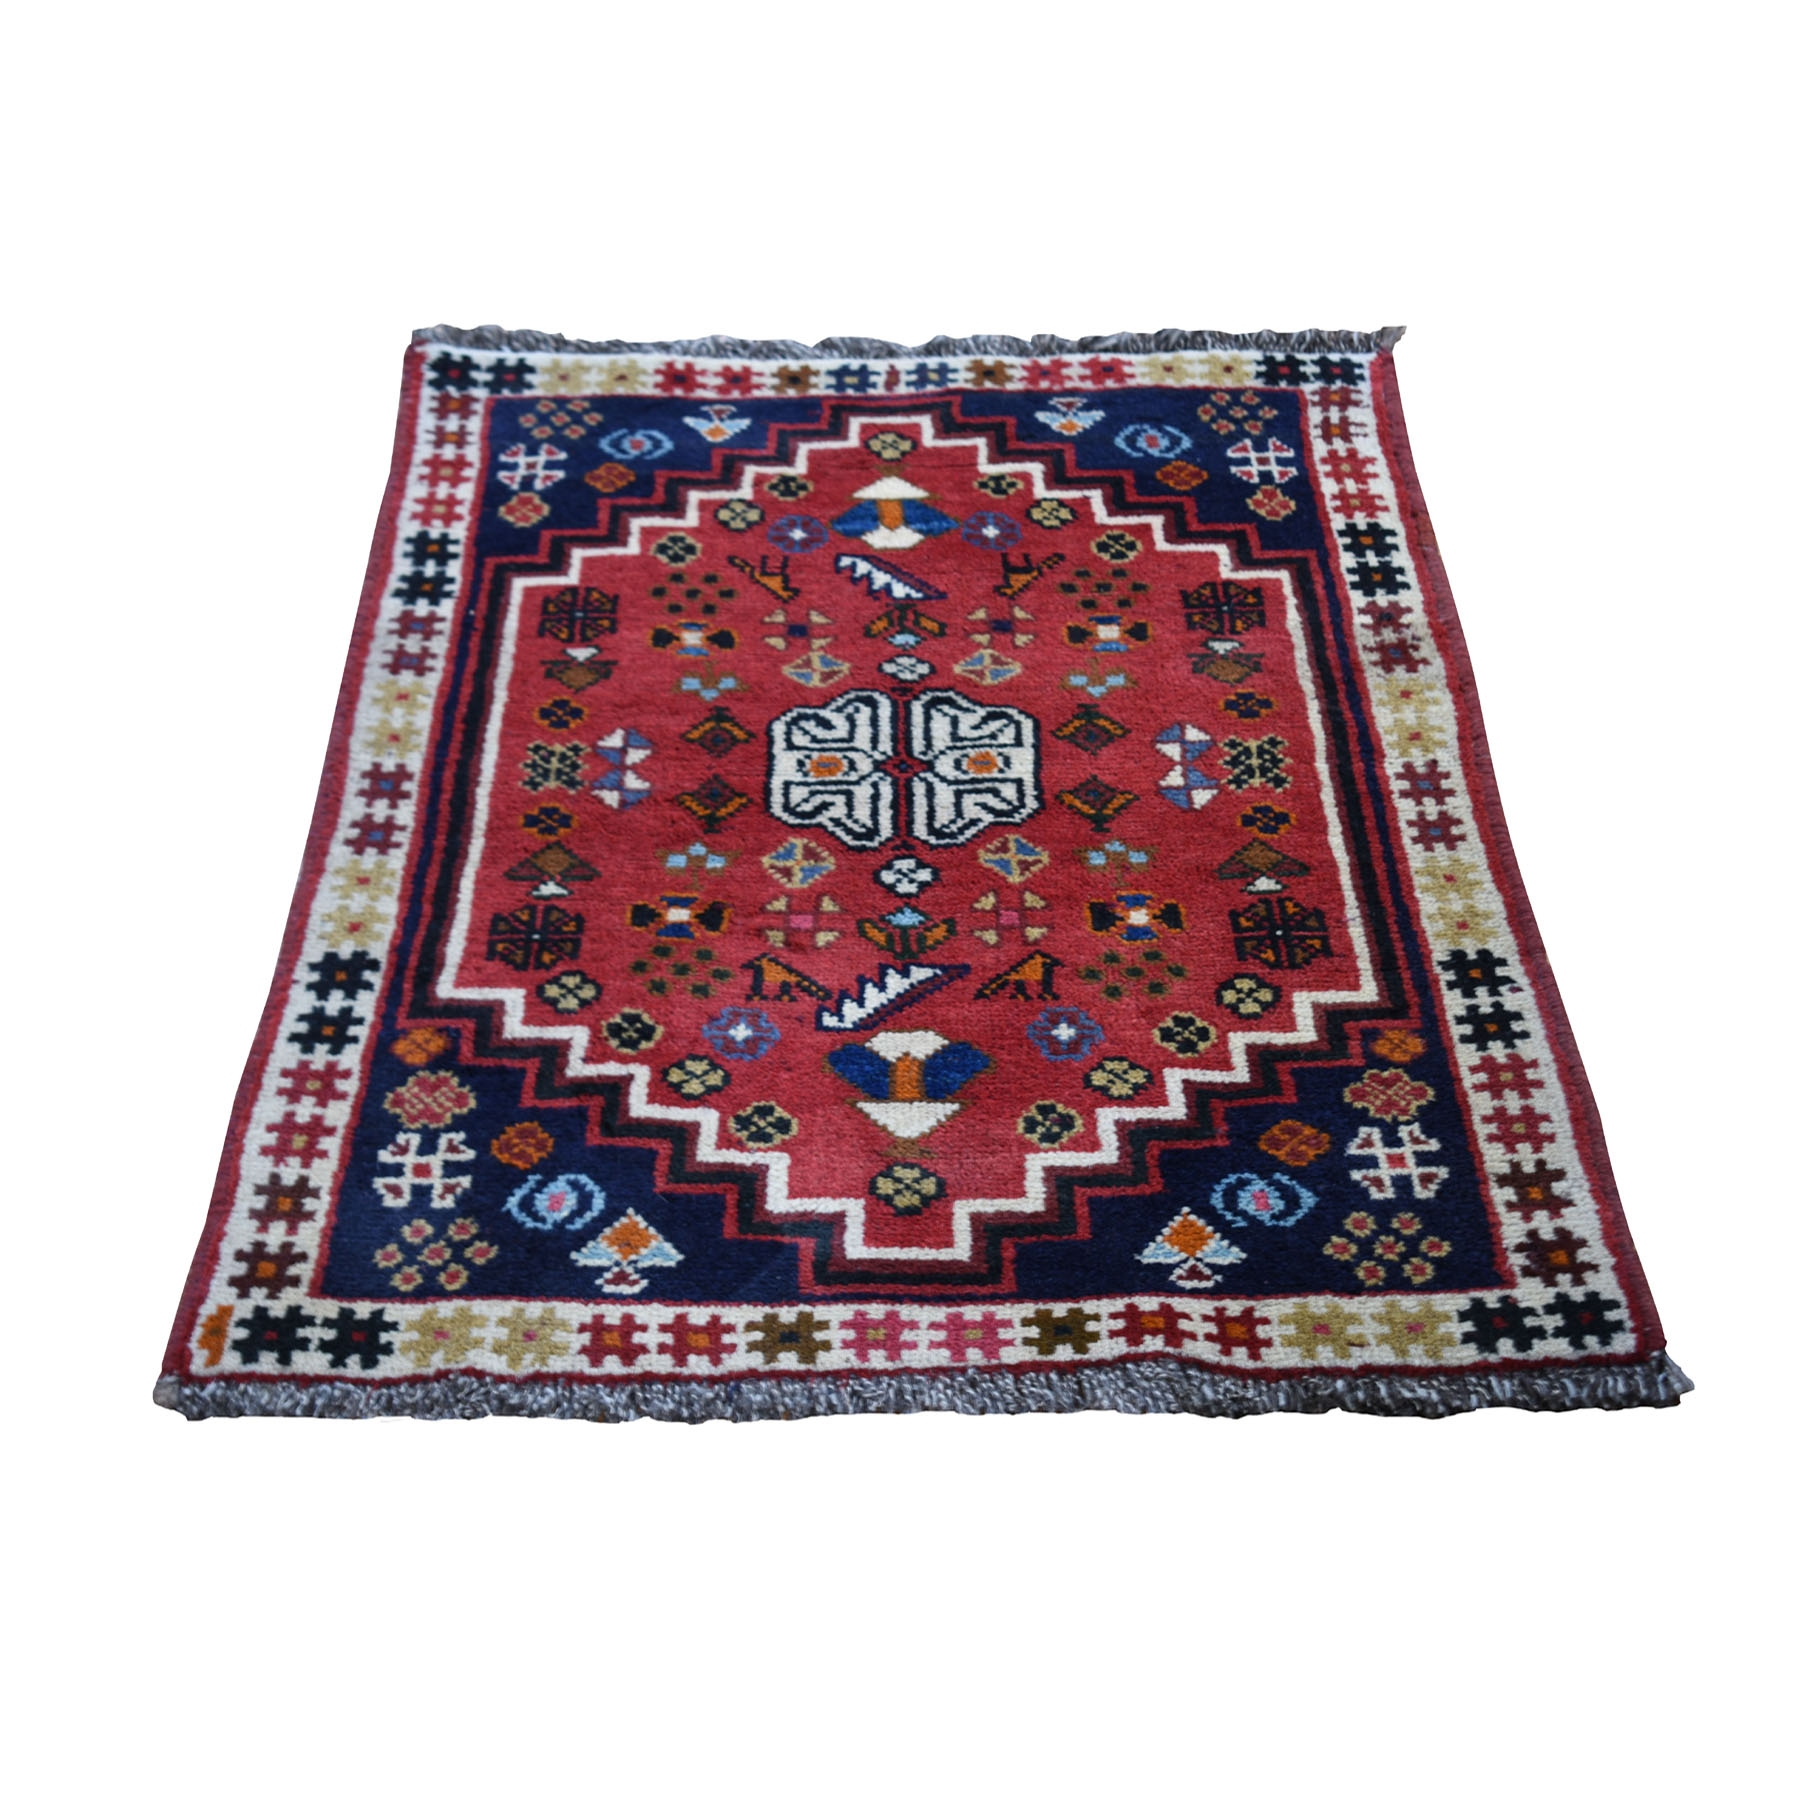 "2'4""x3'3"" Red New Persian Shiraz With Figurines Nomad Vivid Hand Woven Pure Wool Small Rug"